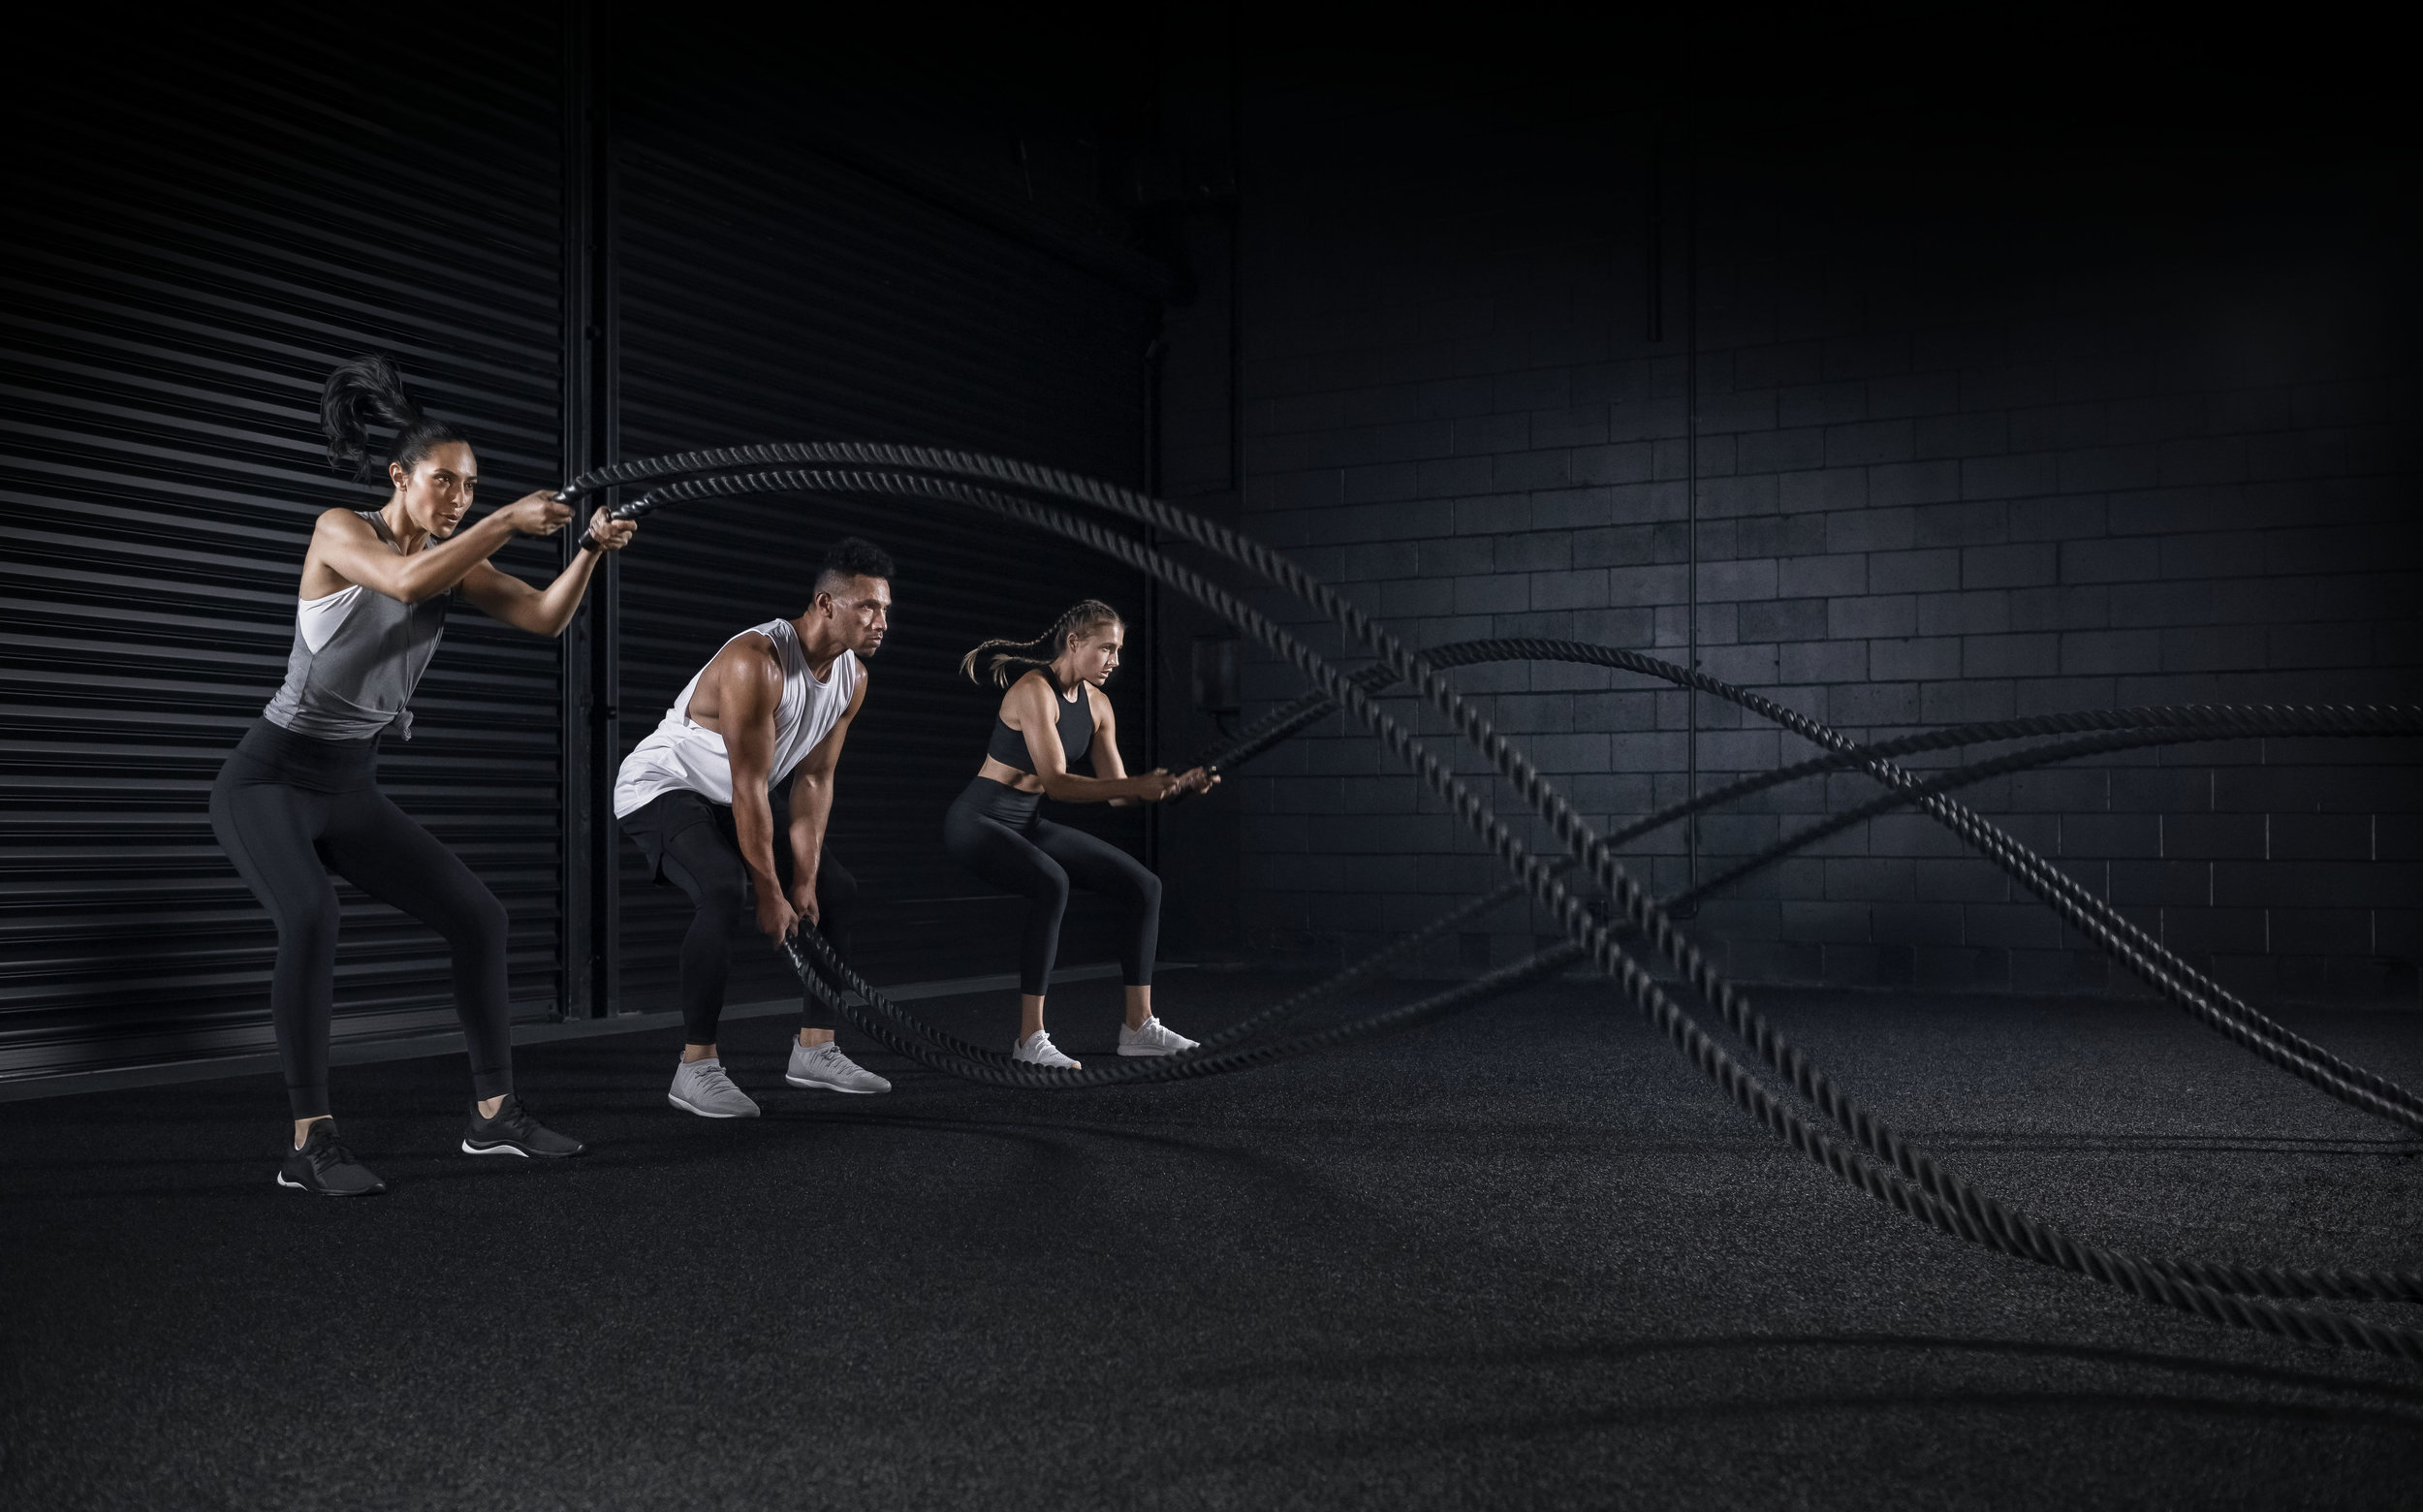 LesMills_AKL_Functional-Studio_Battleropes_0269.jpg